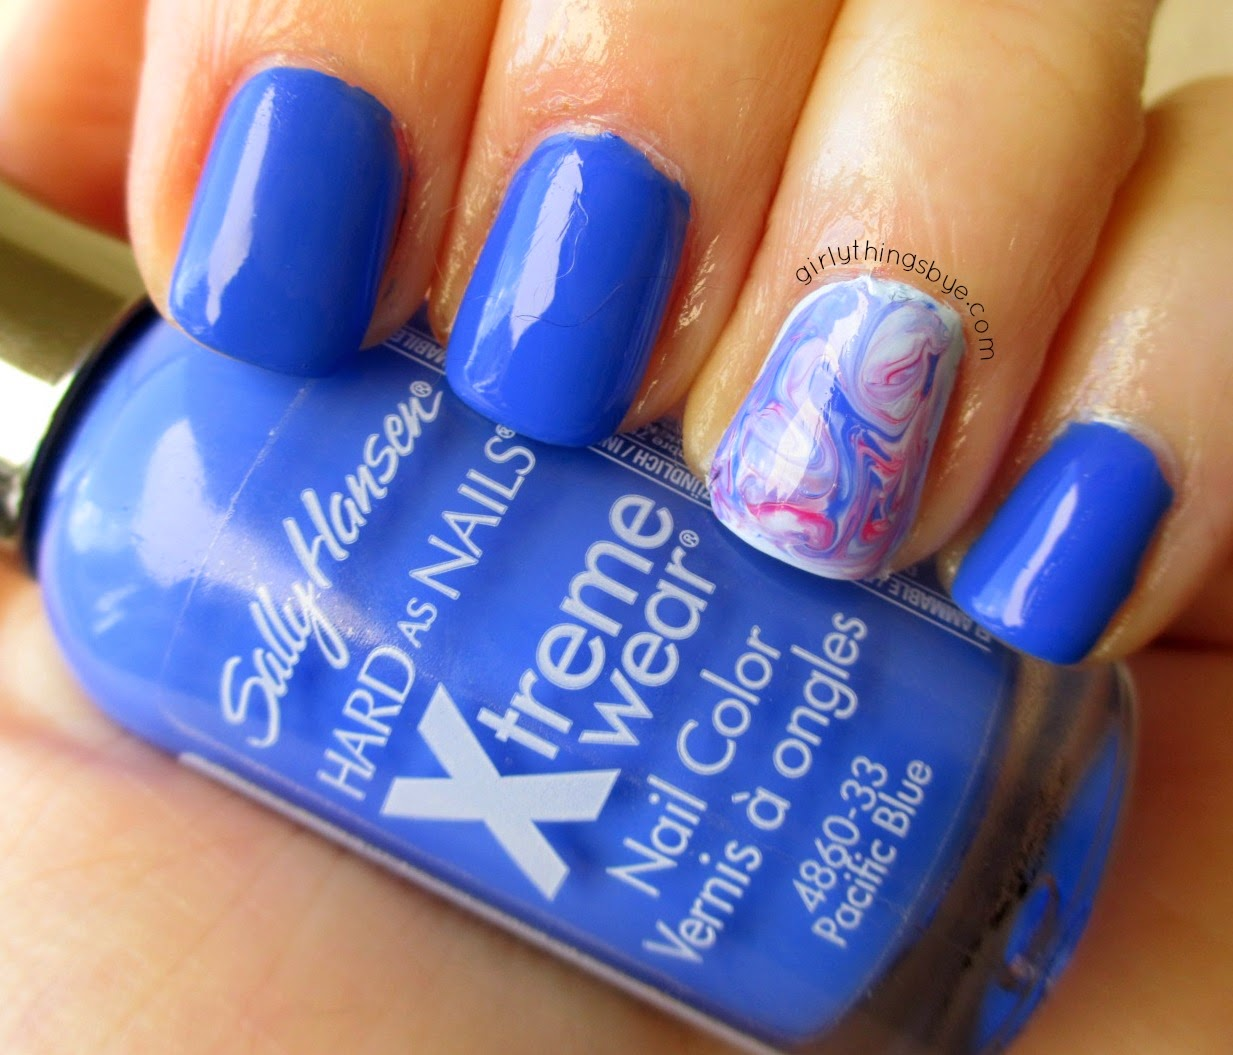 Sally Hansen Pacific Blue, marble nails, swatch, nail polish, @girlythingsby_e